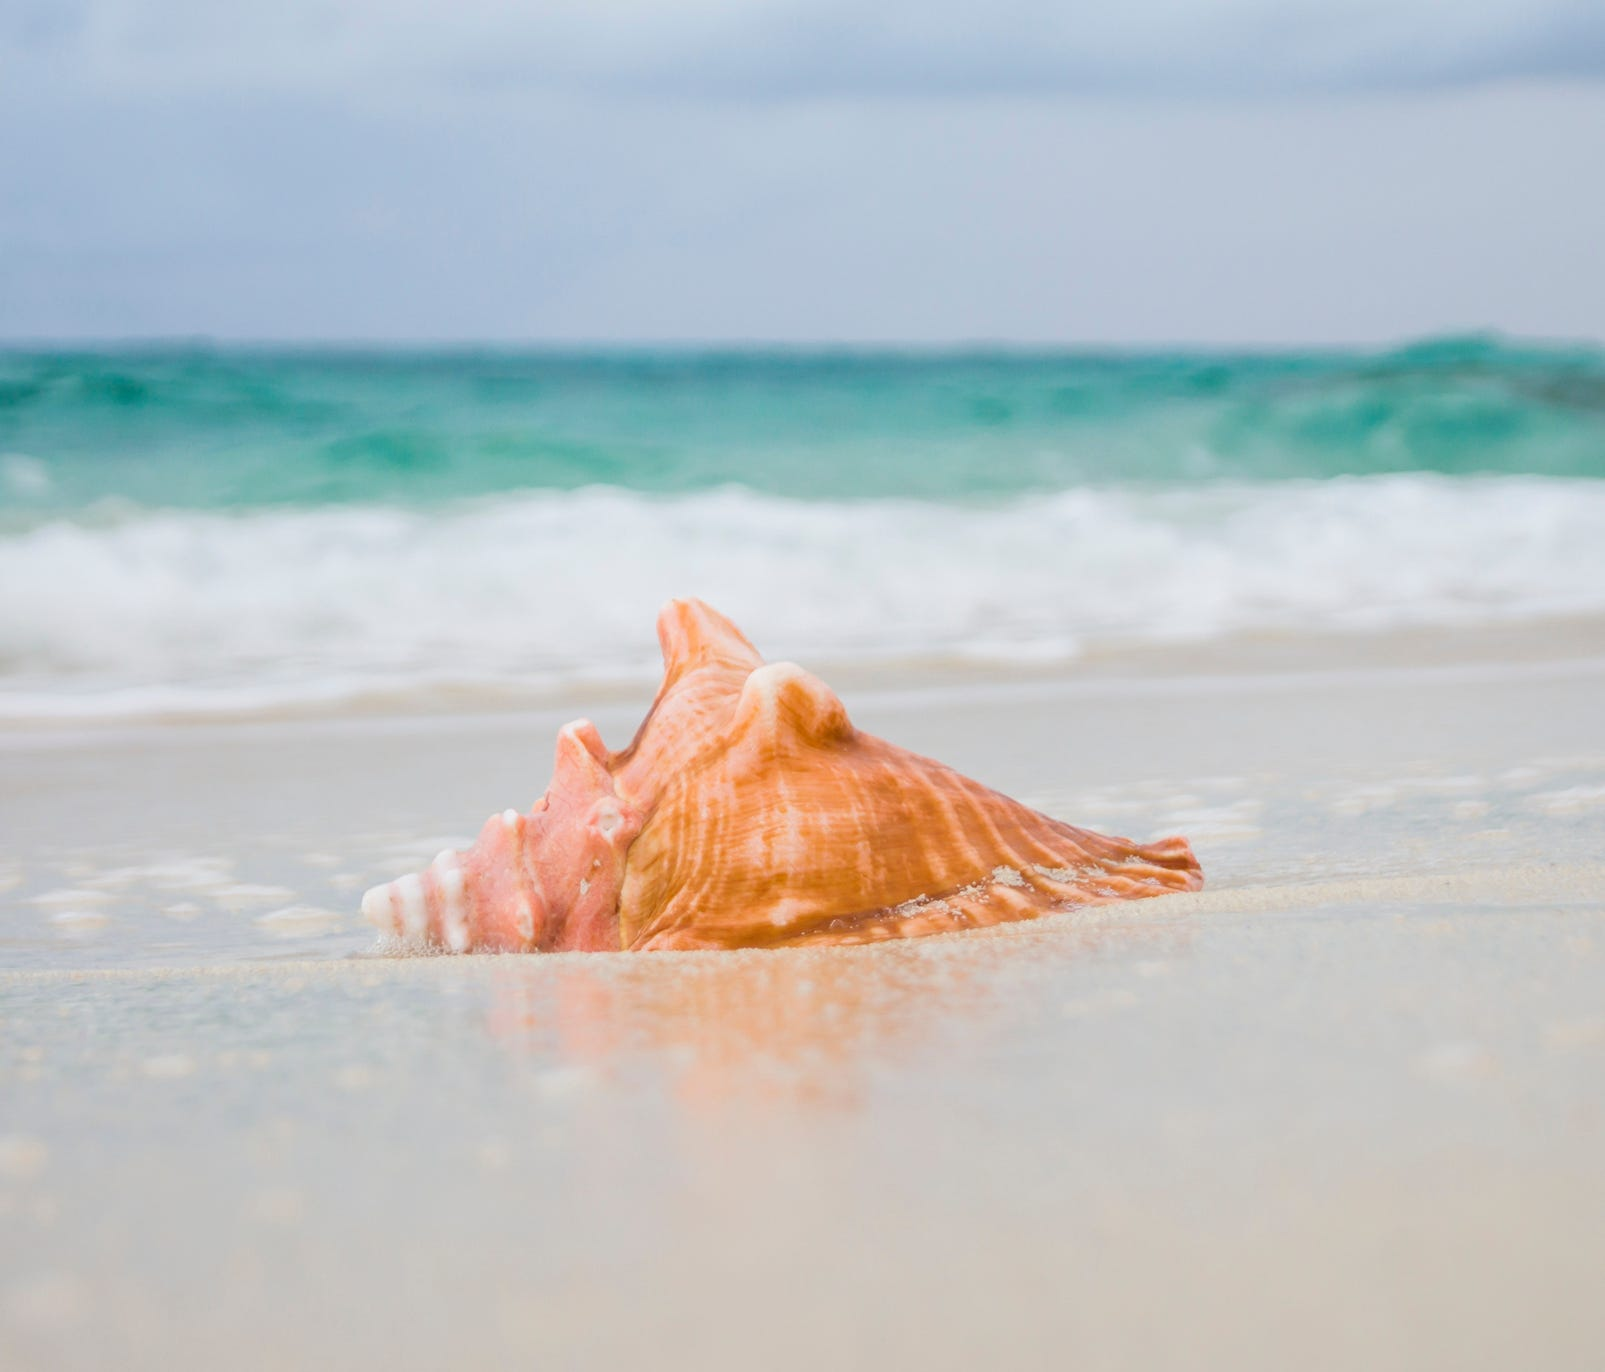 It is illegal to take conch shells with living organisms from Florida beaches.